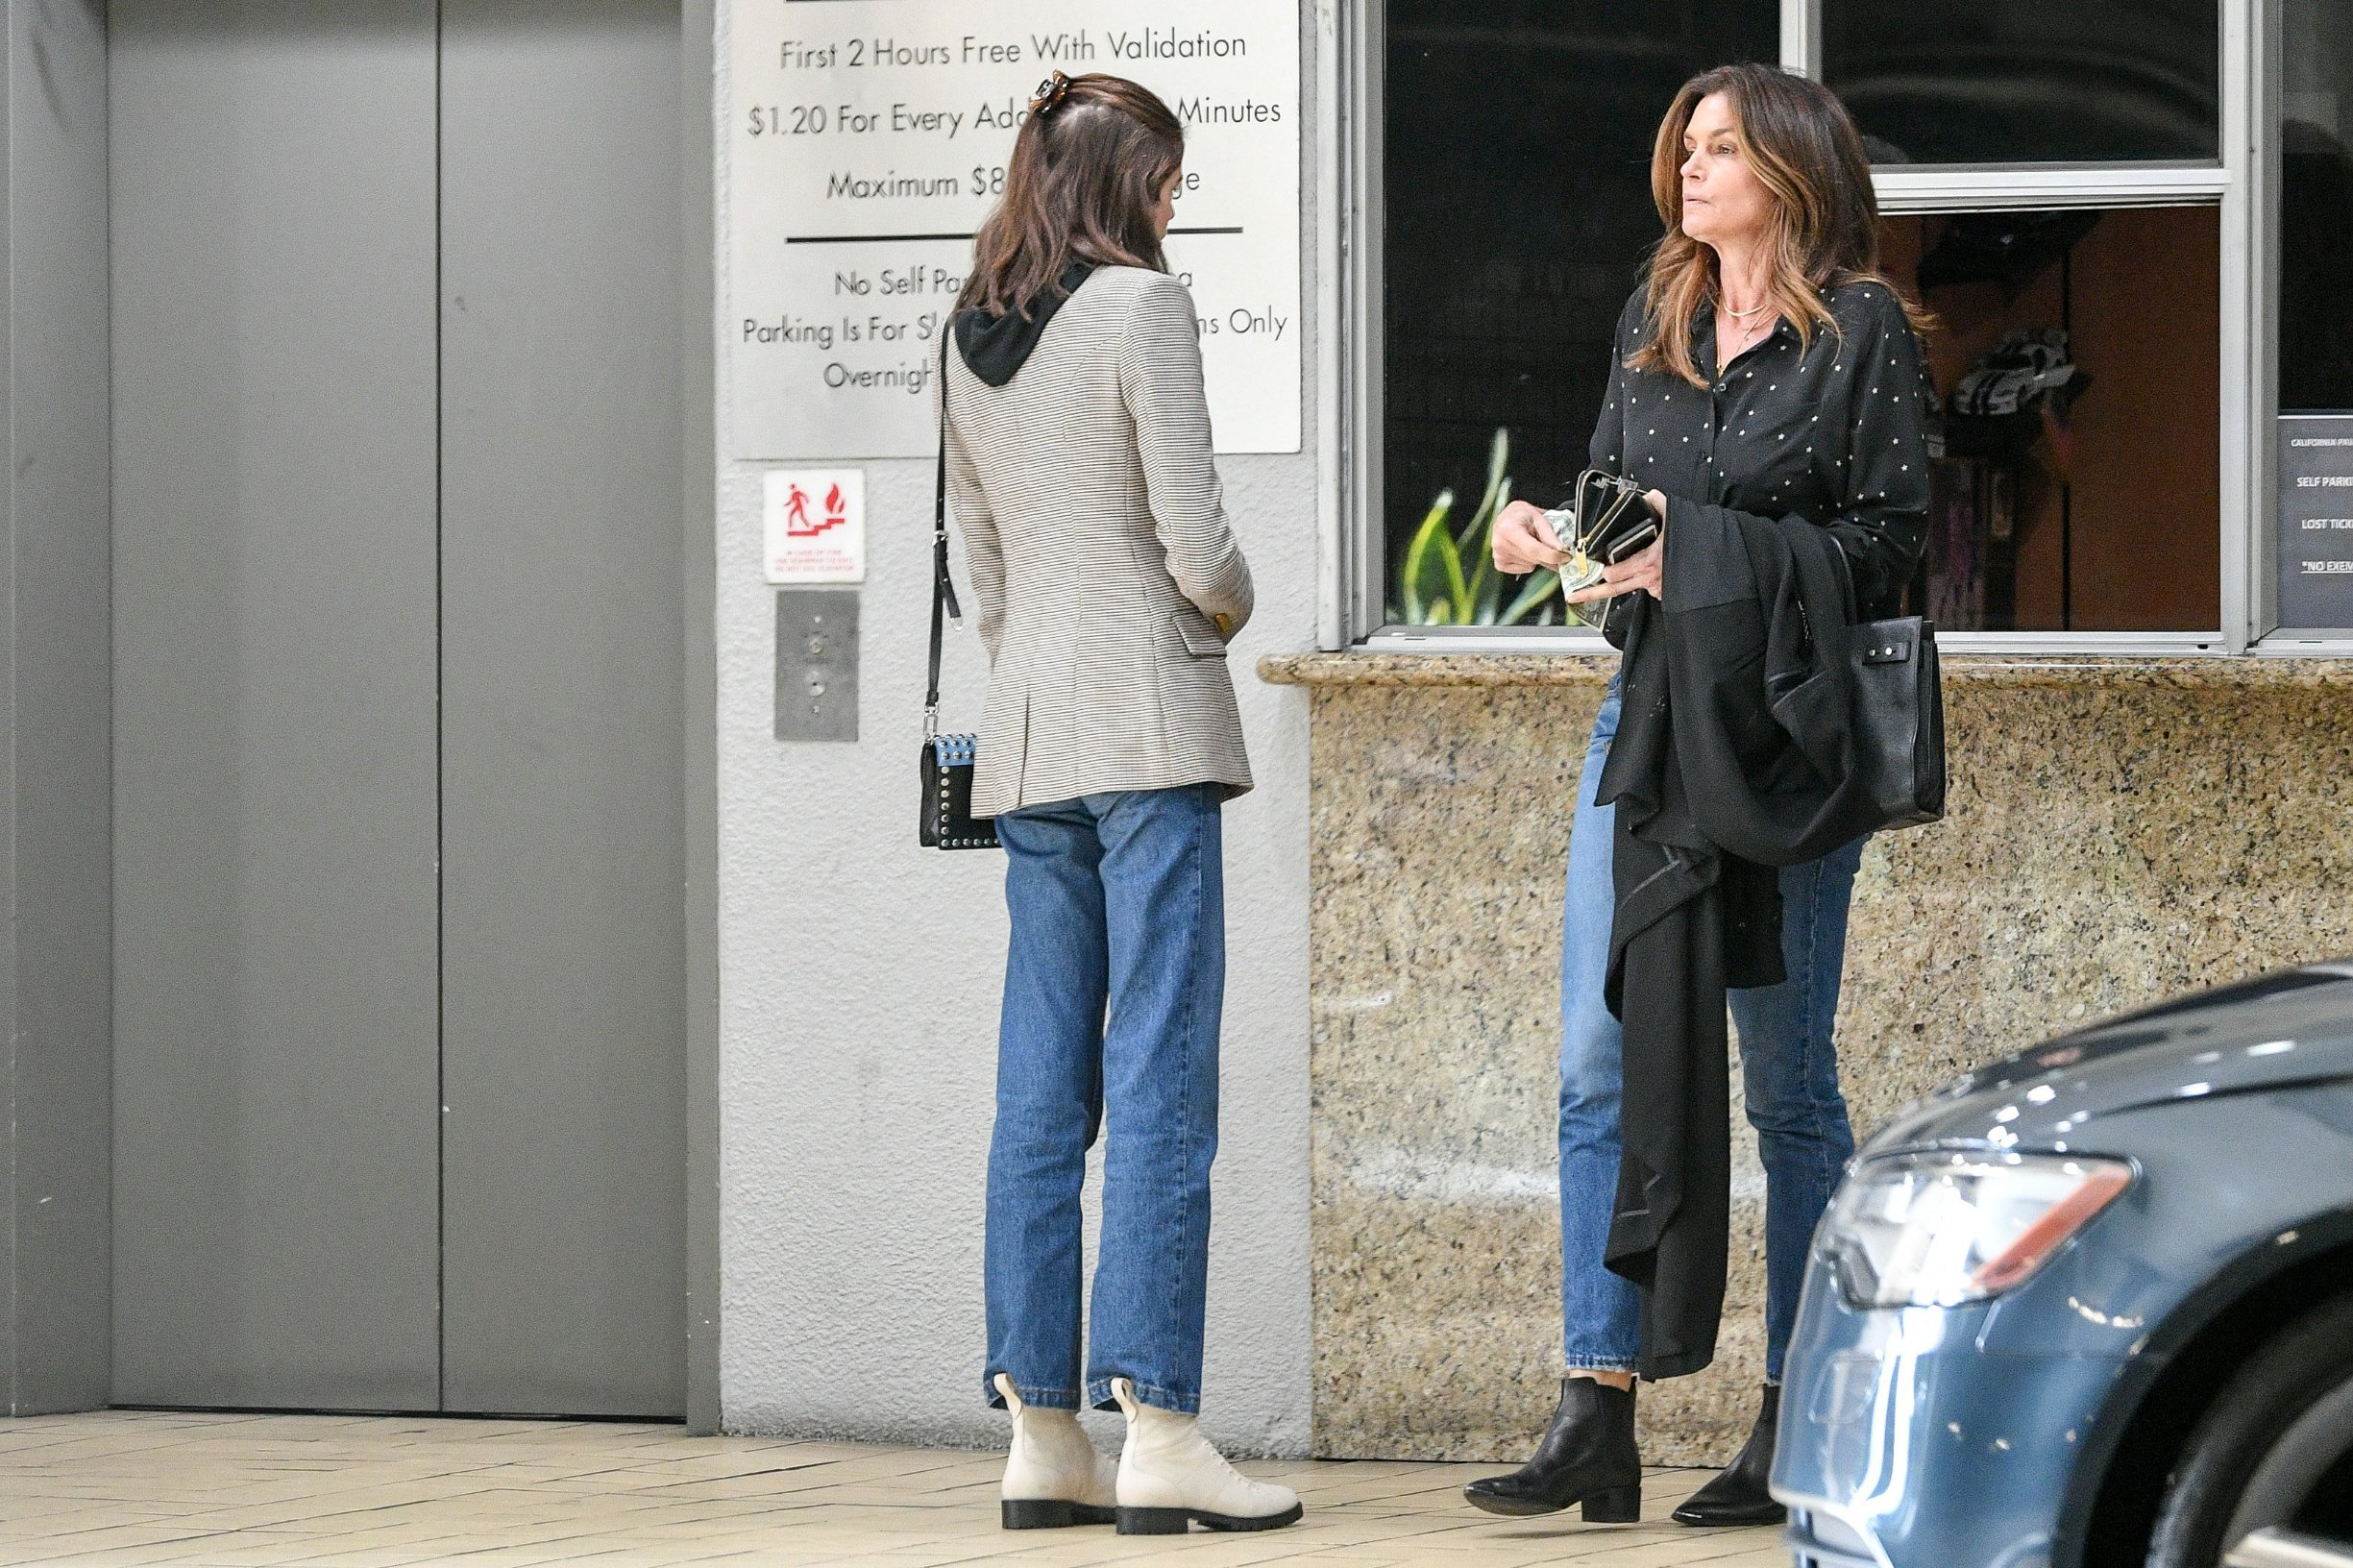 Cindy Crawford and Kaia Gerber Look Like Sisters Leaving Business Meeting. 05 Feb 2019, Image: 412238023, License: Rights-managed, Restrictions: World Rights, Model Release: no, Credit line: Profimedia, Mega Agency